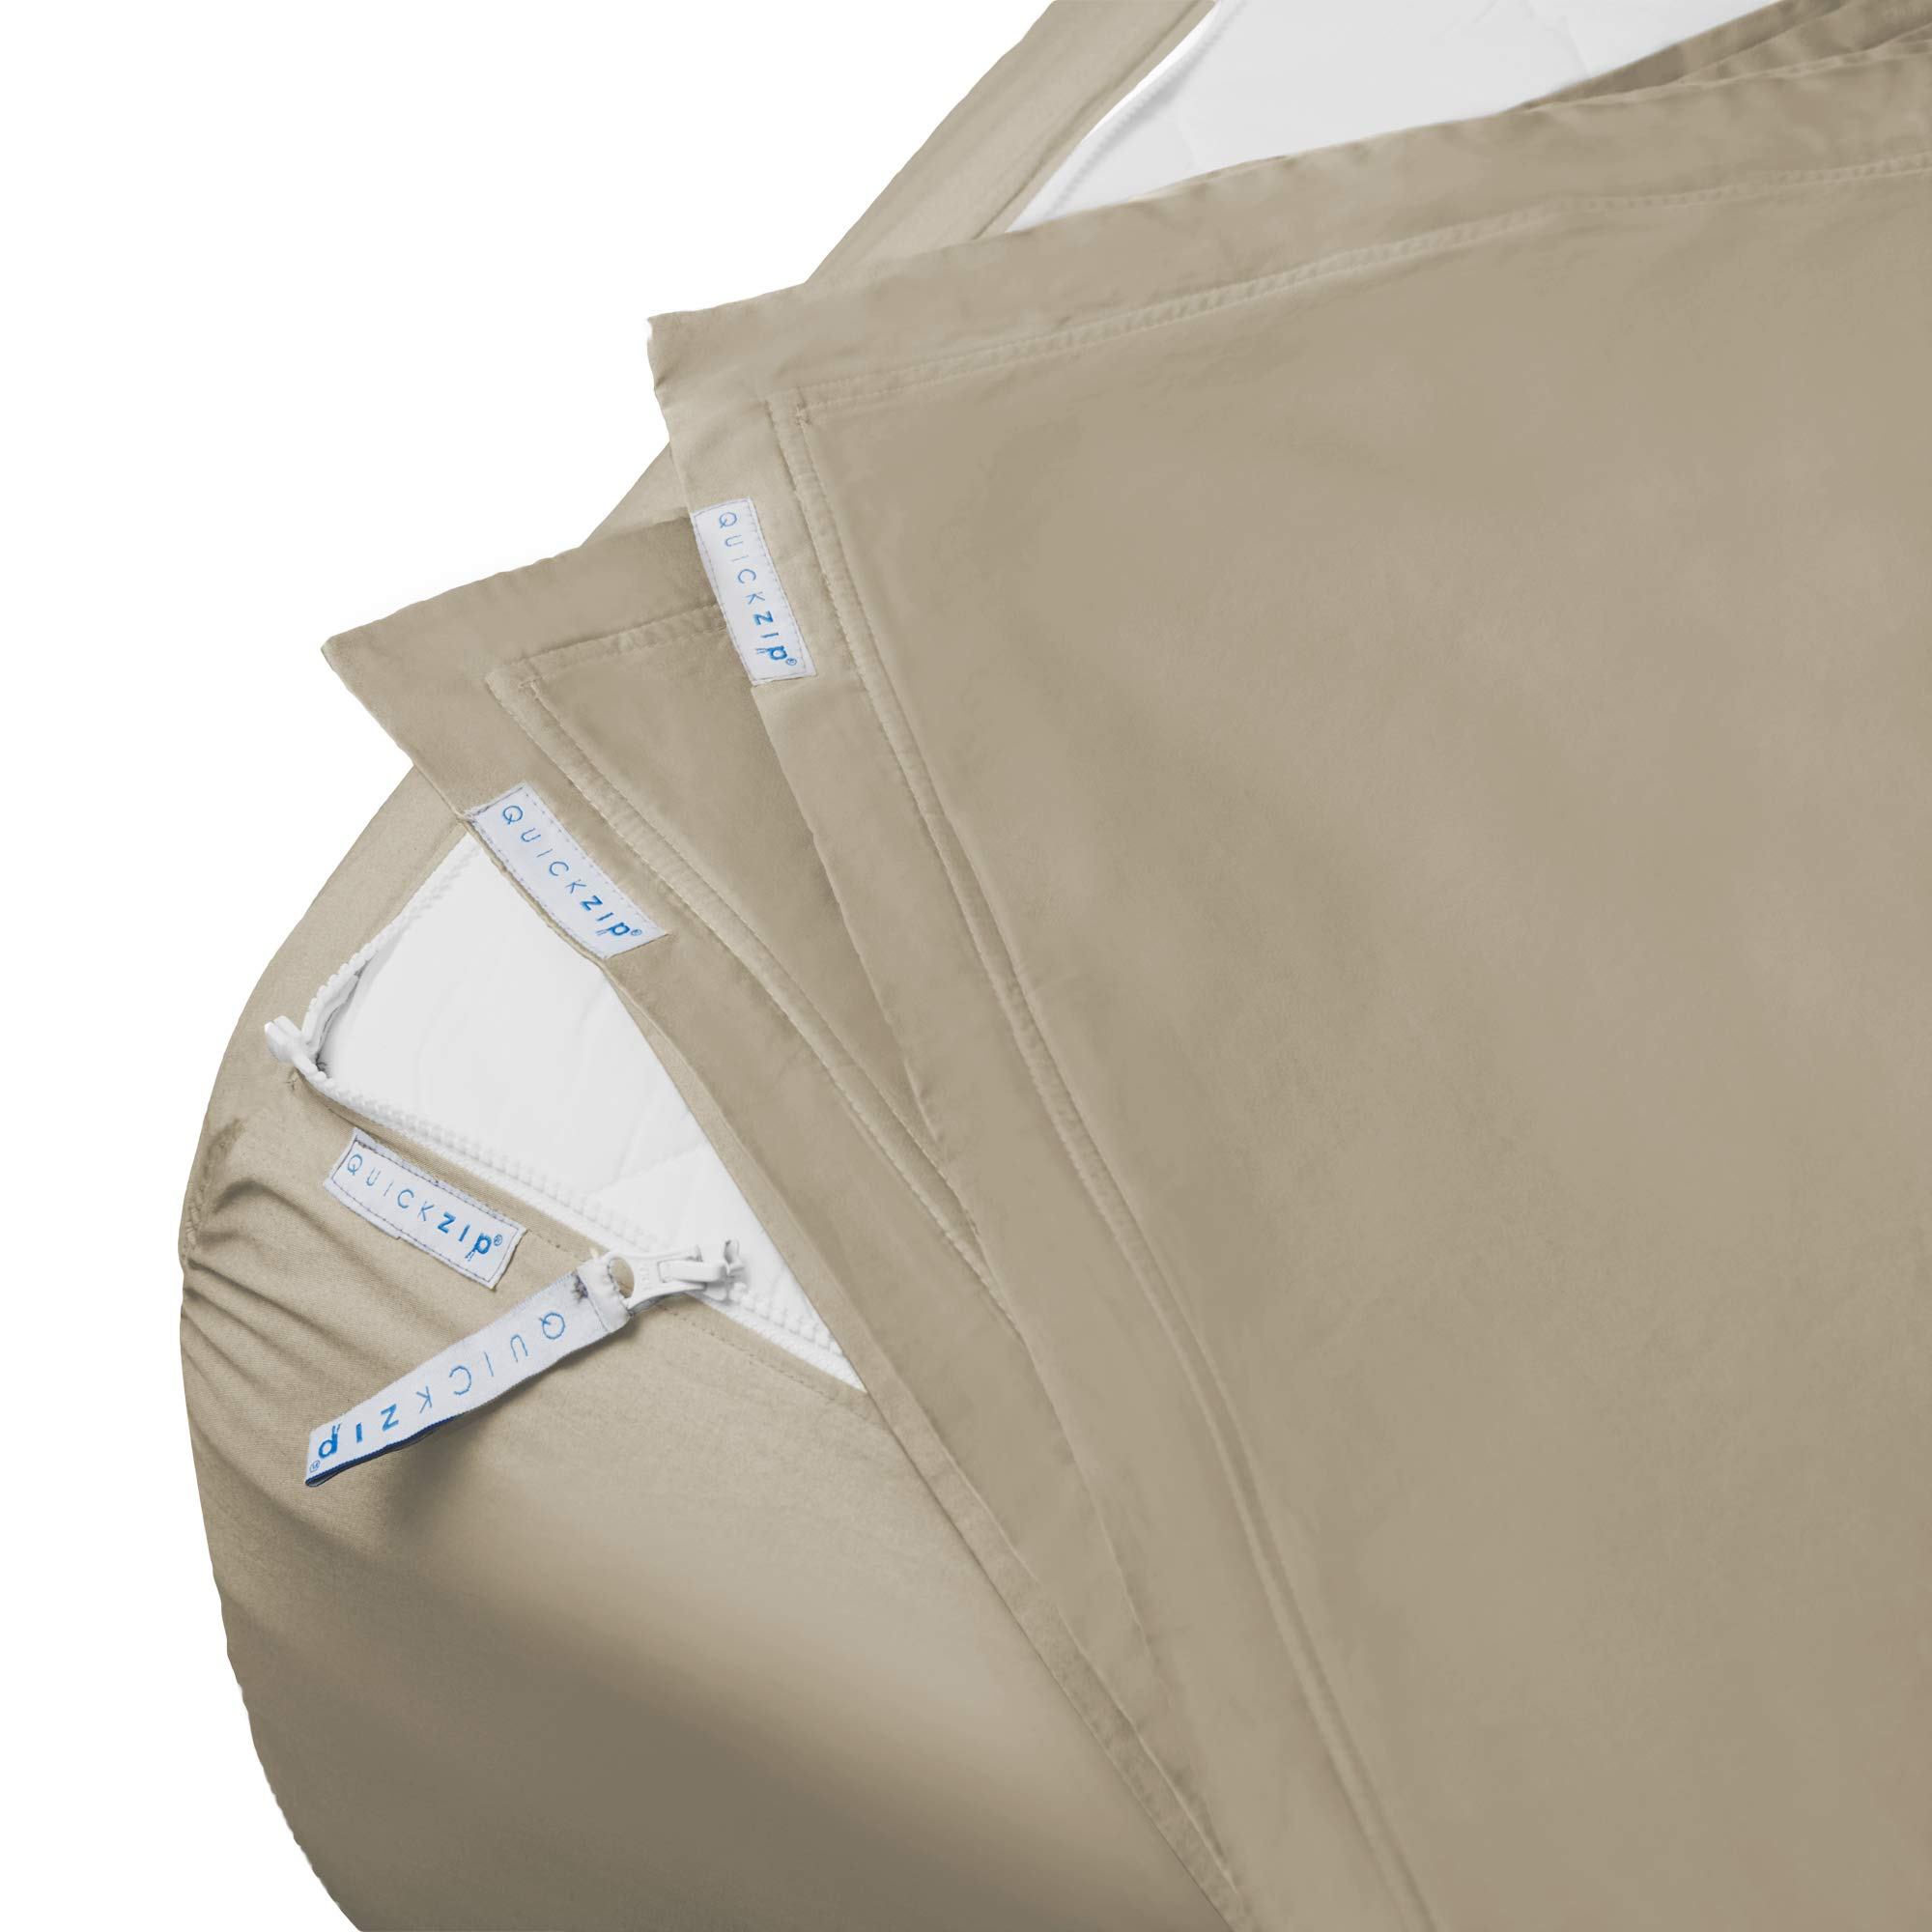 QuickZip Fitted Sheet - Includes 1 Fitted Sheet Base & 2 Zip-On Sheets - Easy to Change, Fold & Wash Queen Sheet - Soft Sateen 400 TC Cotton Fitted Sheets - 16'' Deep Pockets Queen Size Sheets - Sand by QuickZip